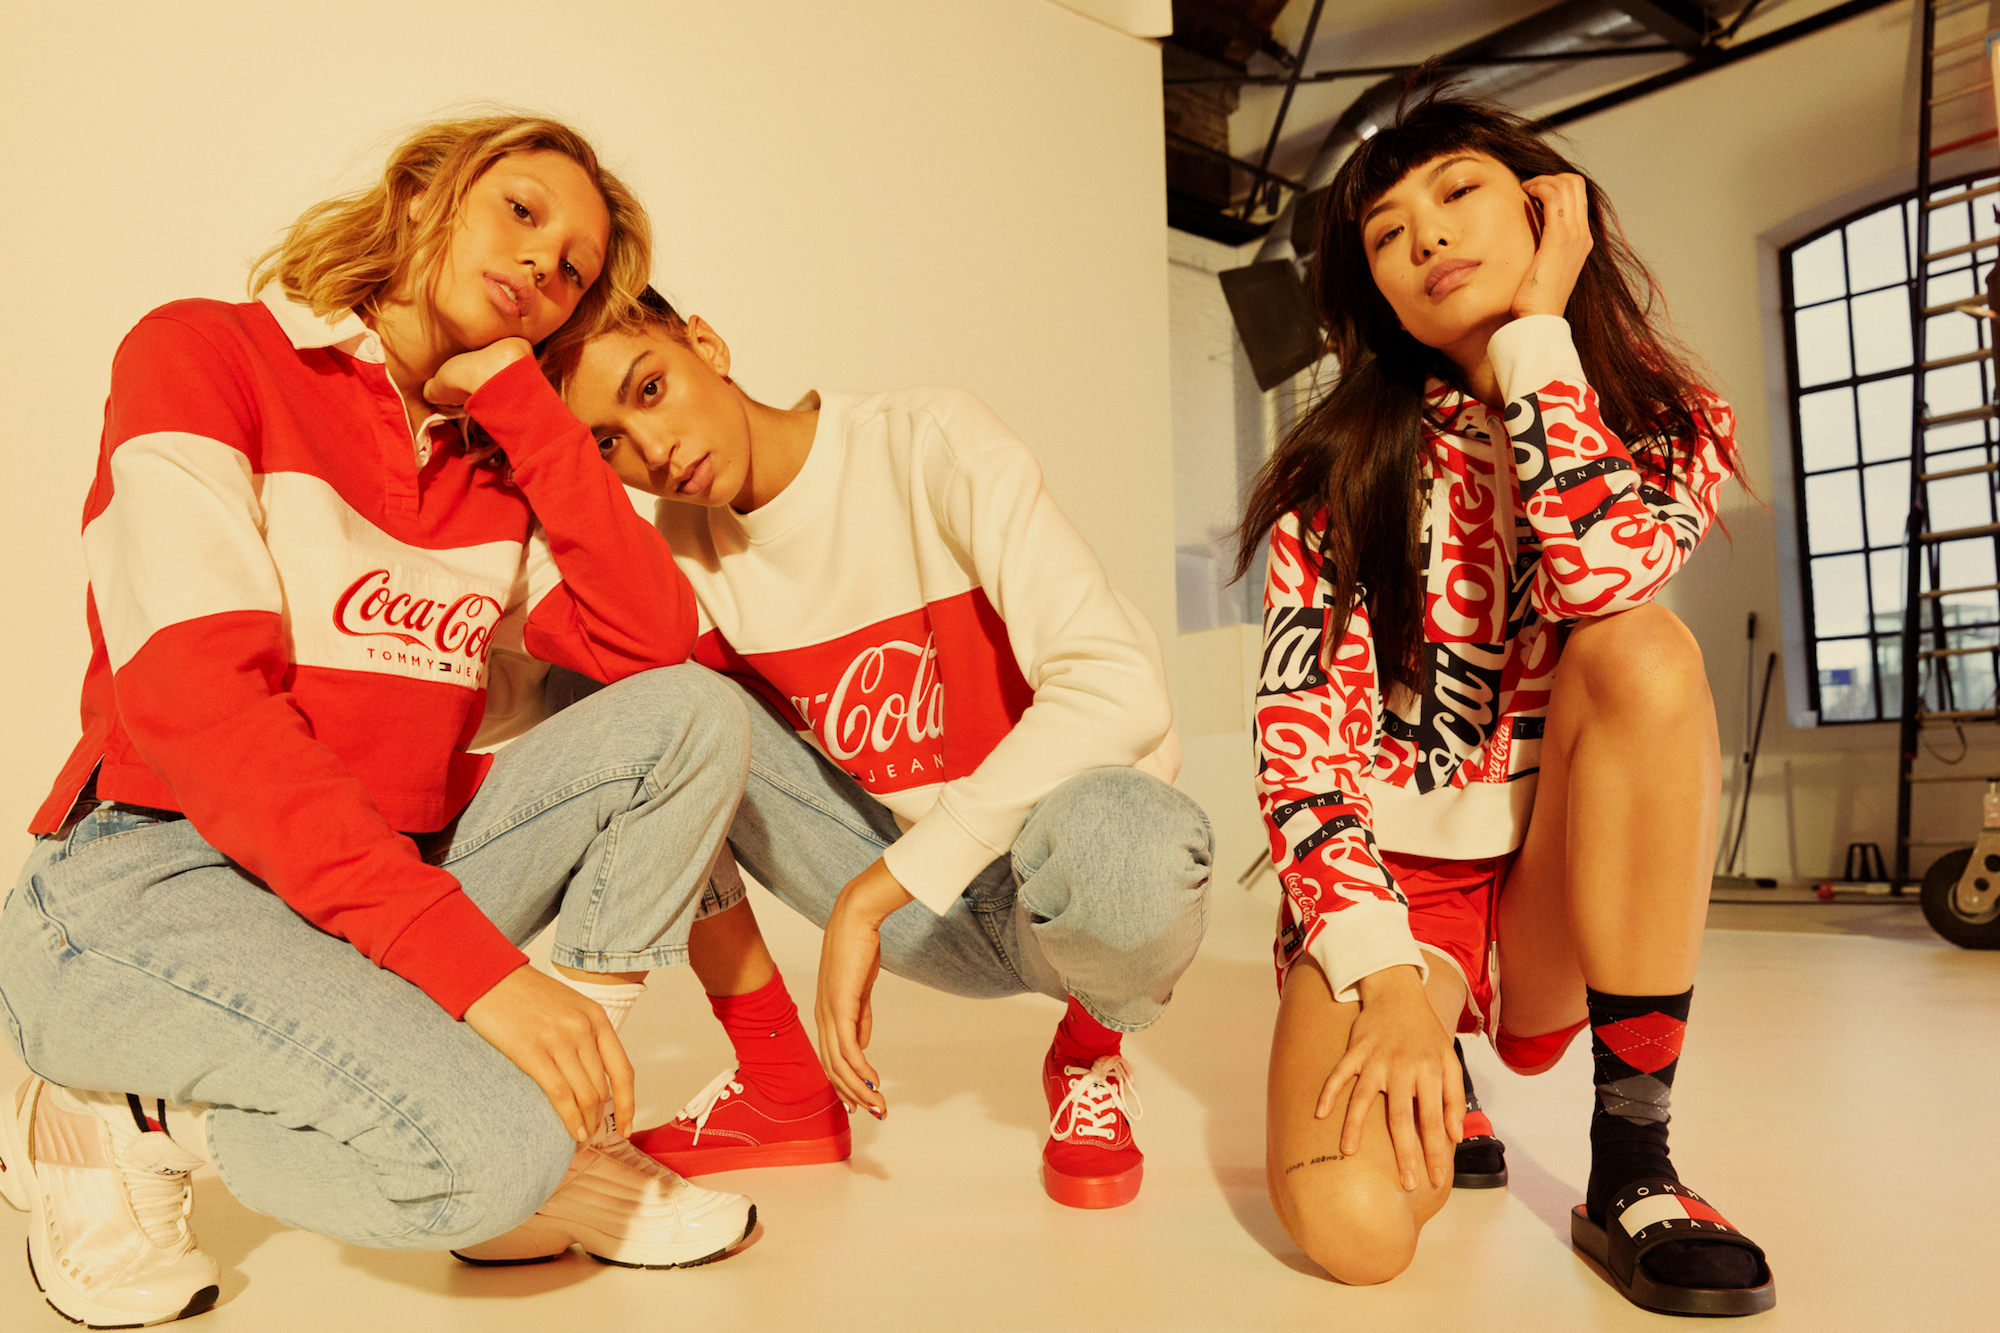 Tommy Hilfiger launches Tommy Jeans Coca-Cola collection womens group shot